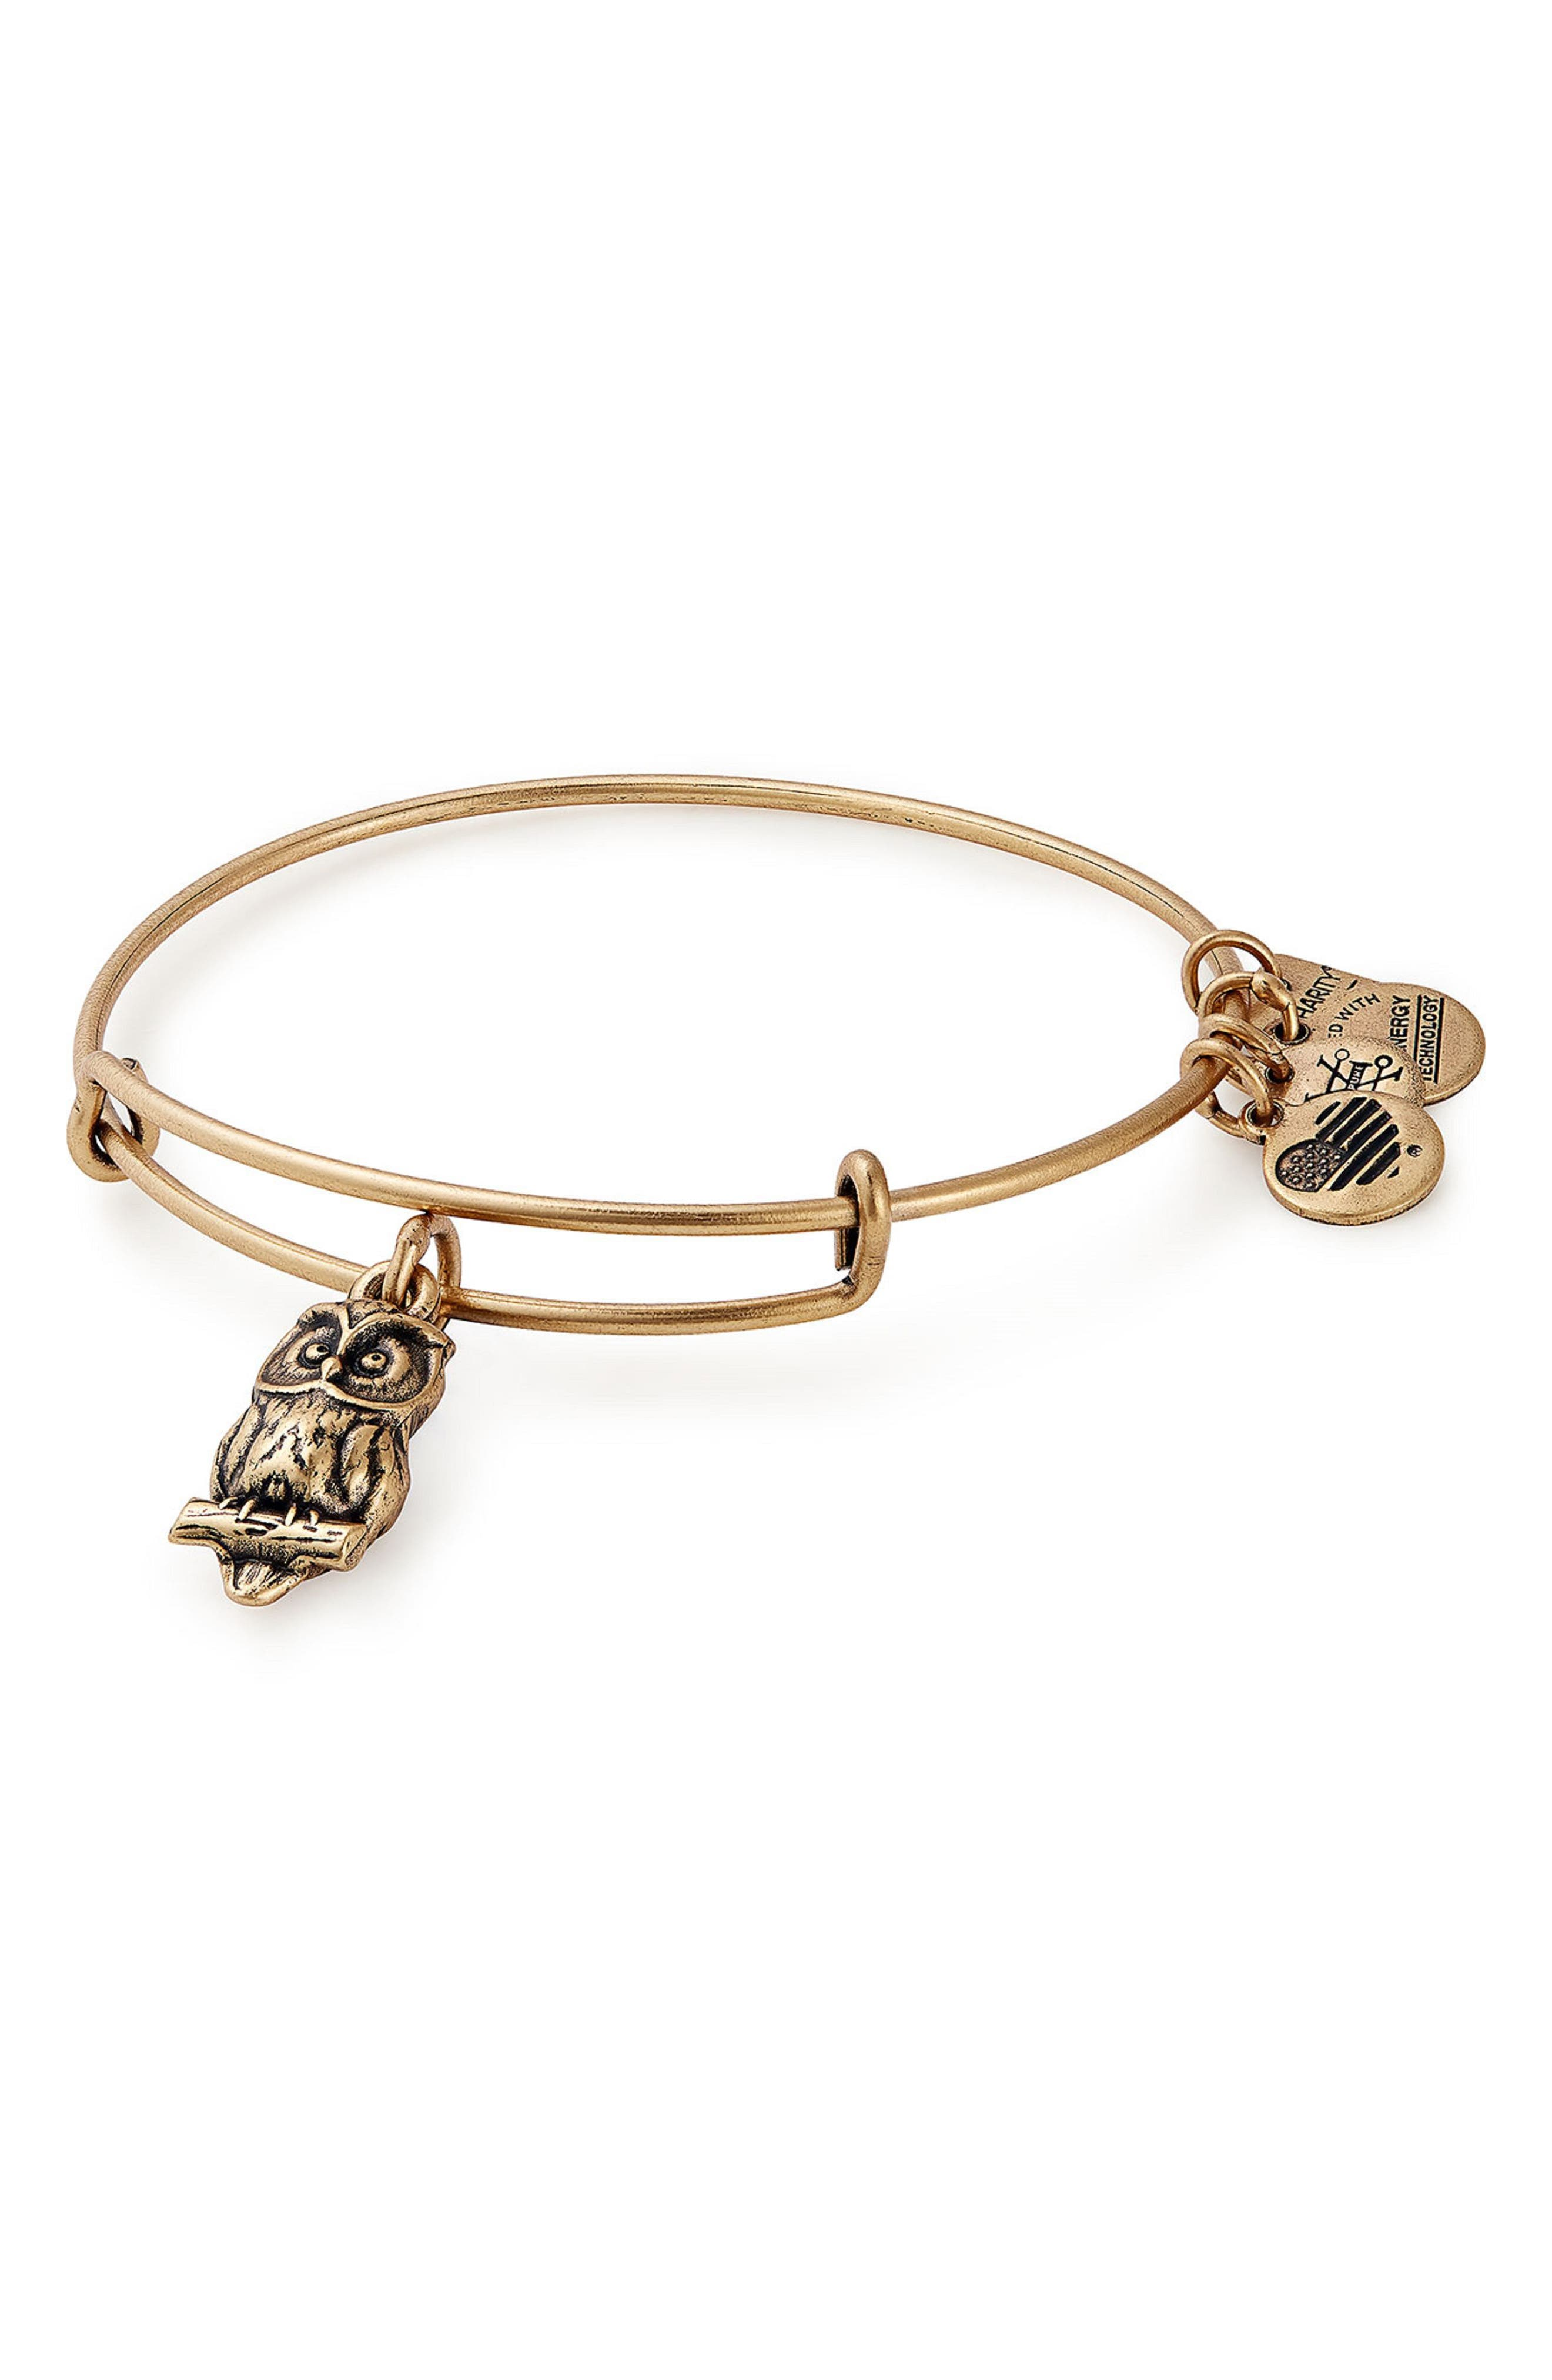 Main Image - Alex and Ani Charity by Design Owl Charm Bracelet